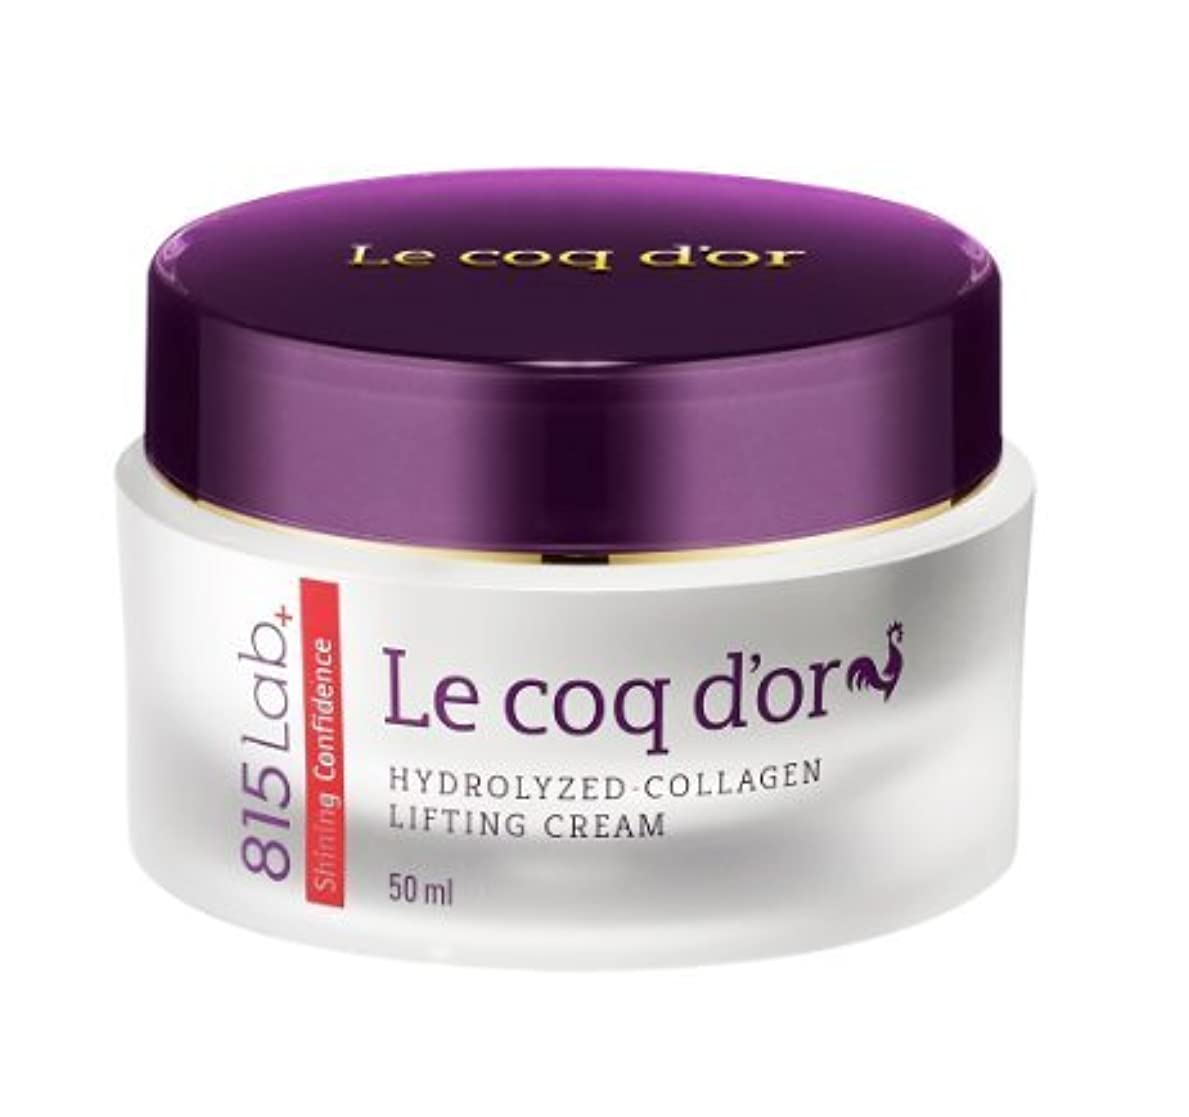 文字通りオピエート今までONEFACE Le coq d'or Hydrolyzed -Collagen Lifting Cream (50ml) [並行輸入品]